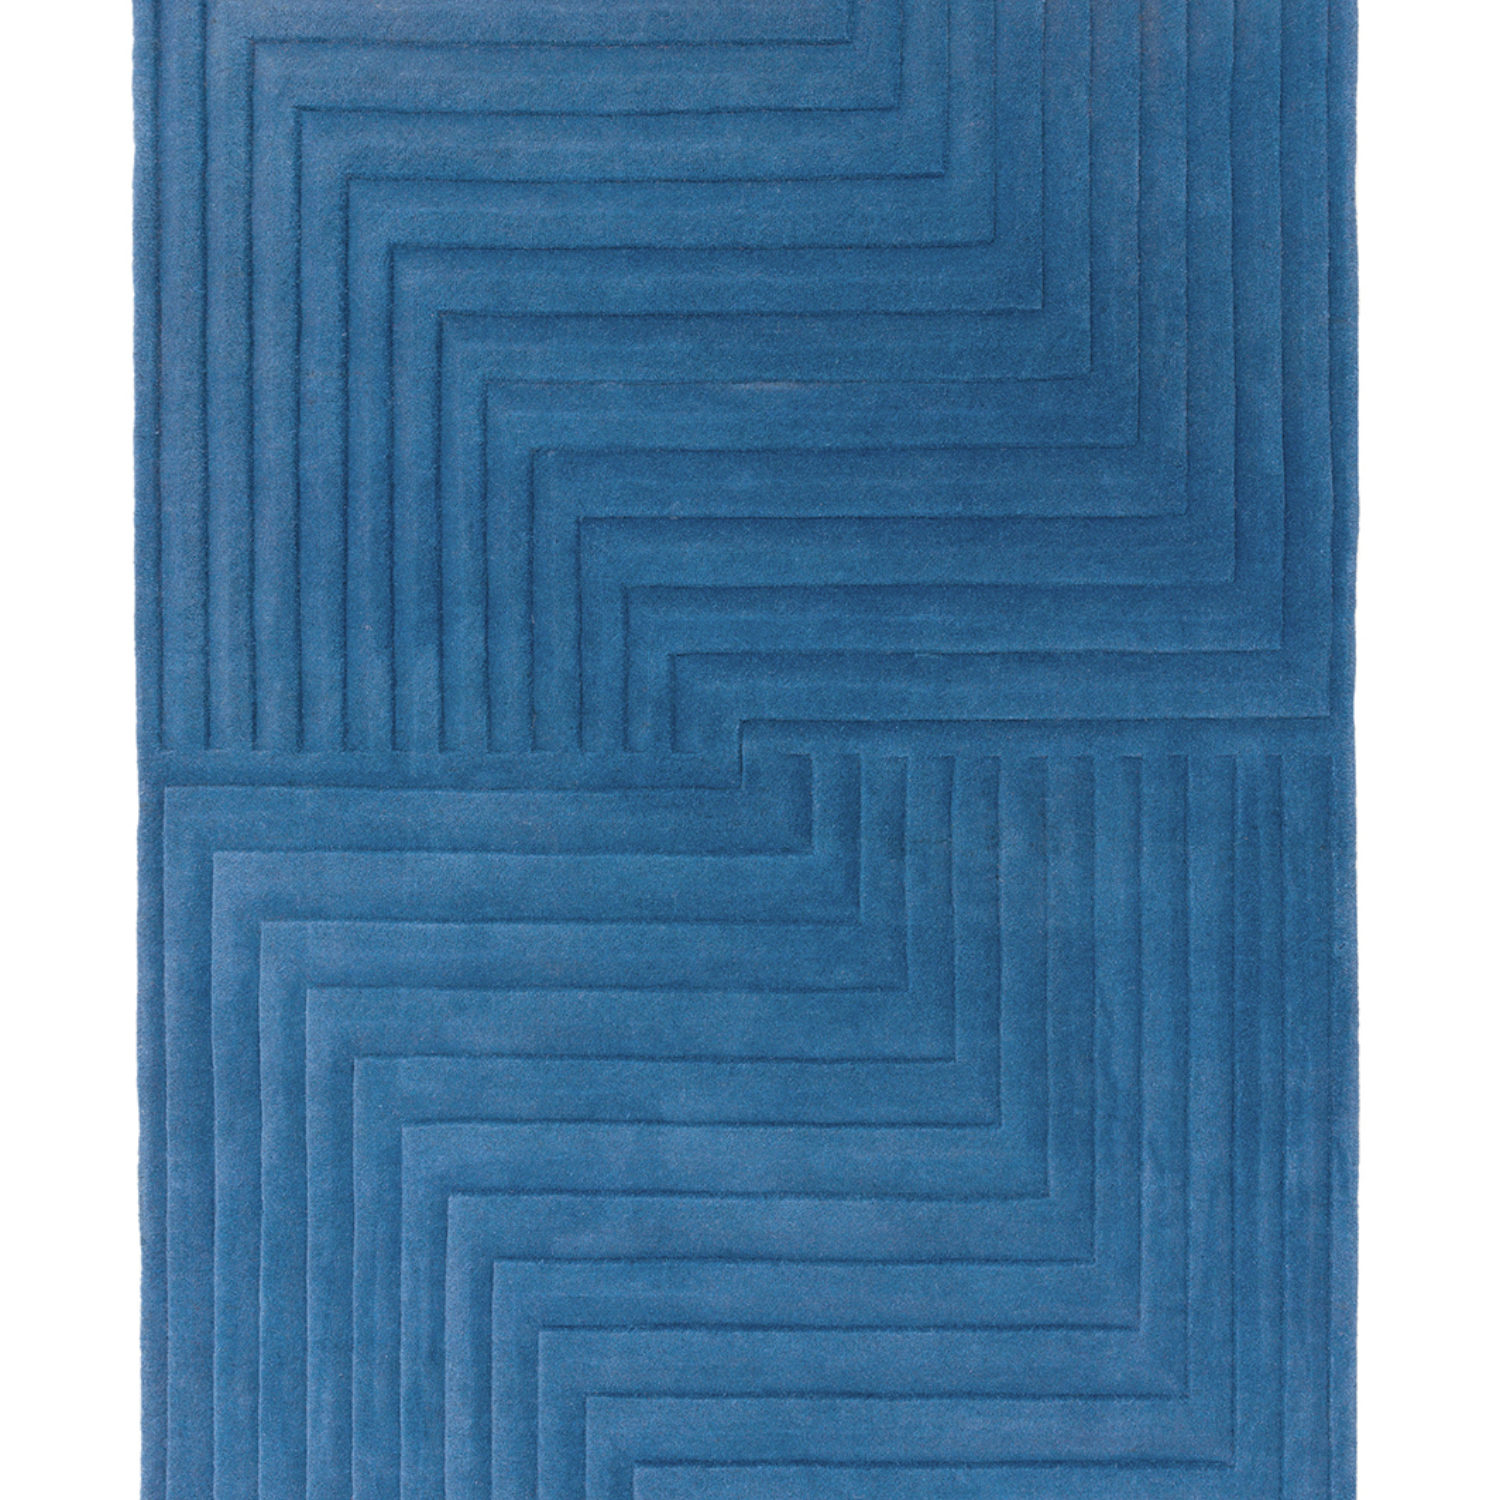 Sophisticated 3D sculptured rug, expertly hand carved